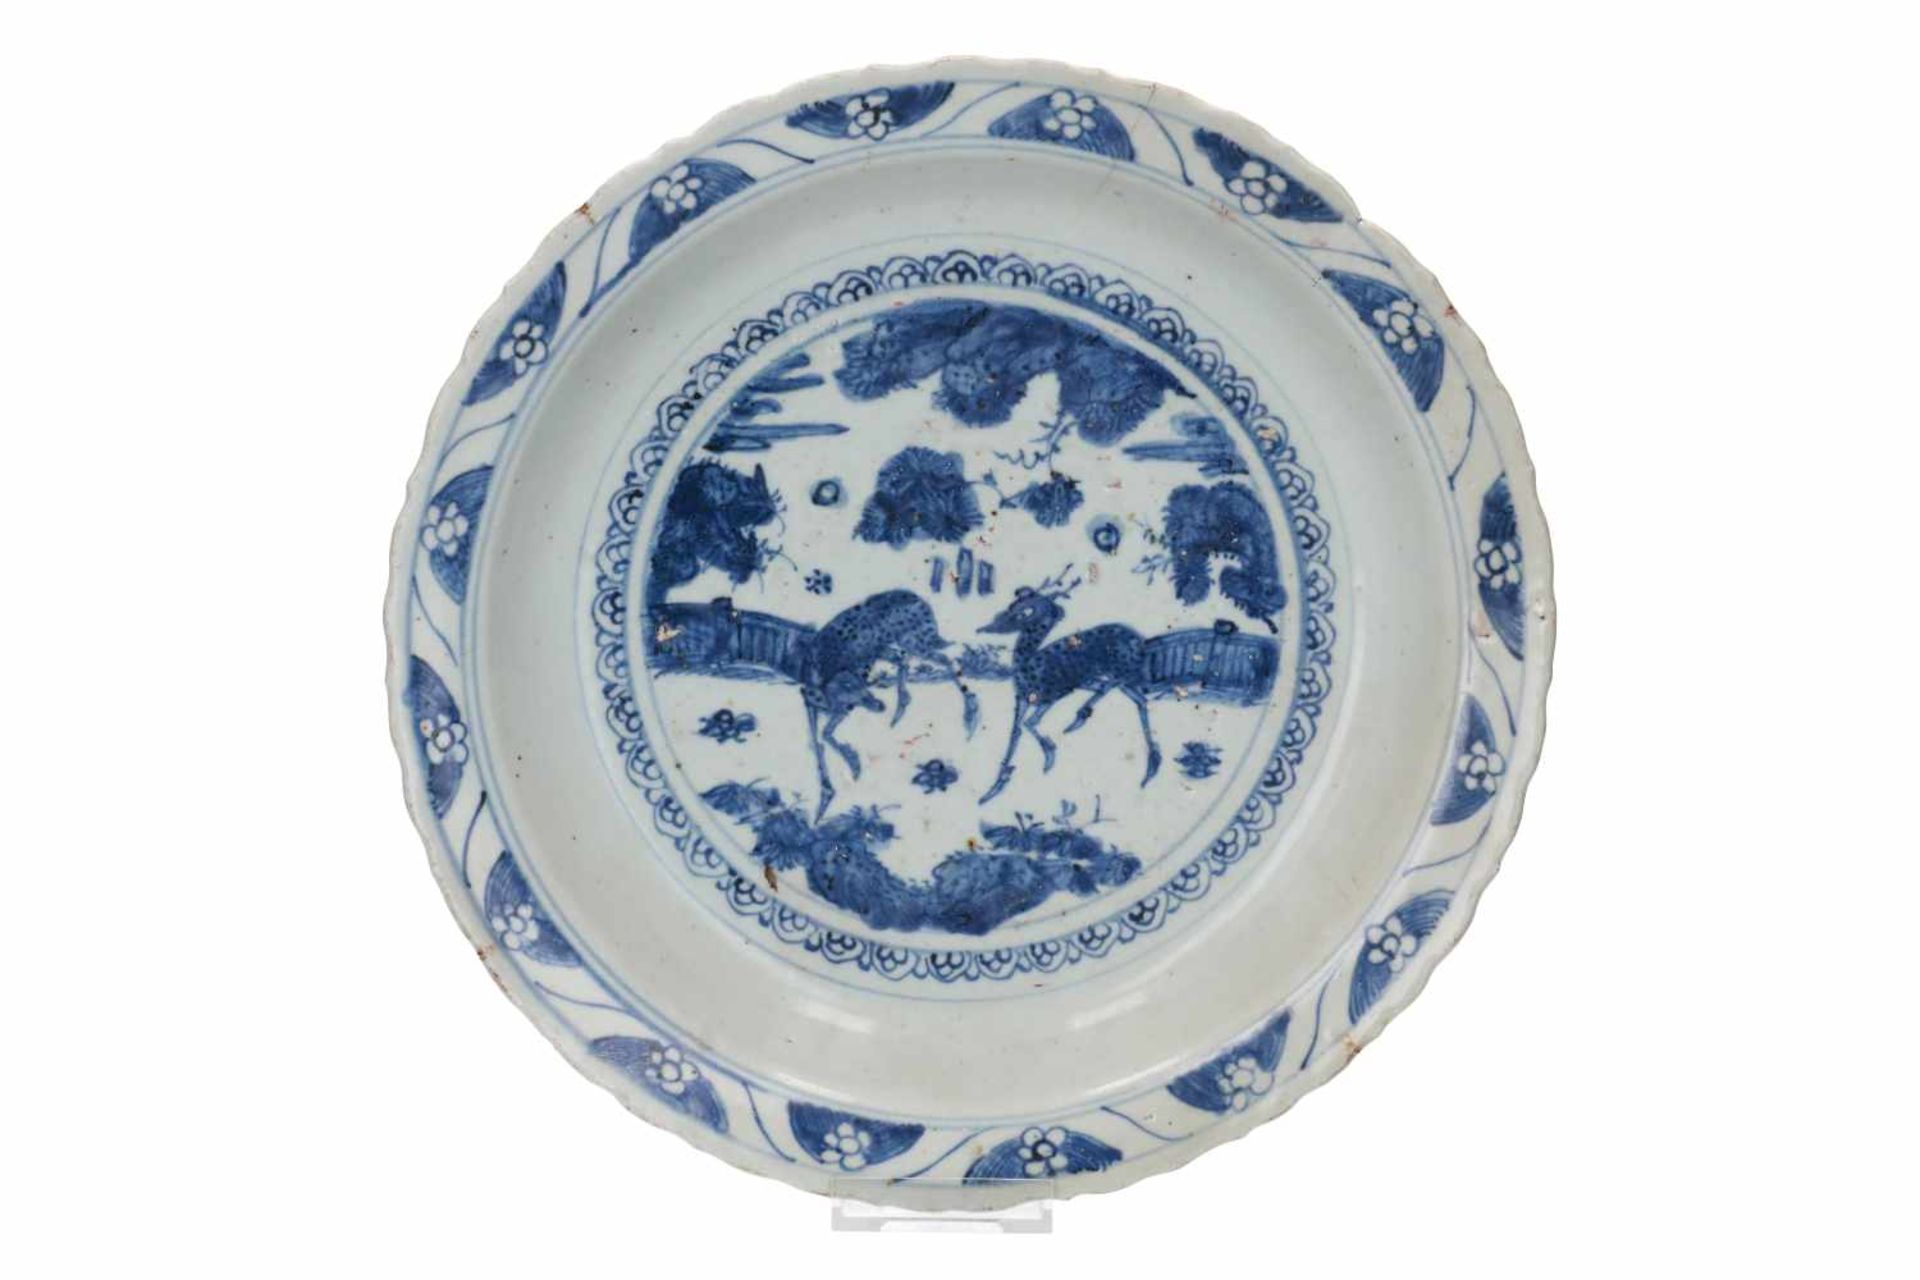 Lot of three blue and white Swatow porcelain chargers, decorated with flowers and animals. One - Bild 4 aus 8